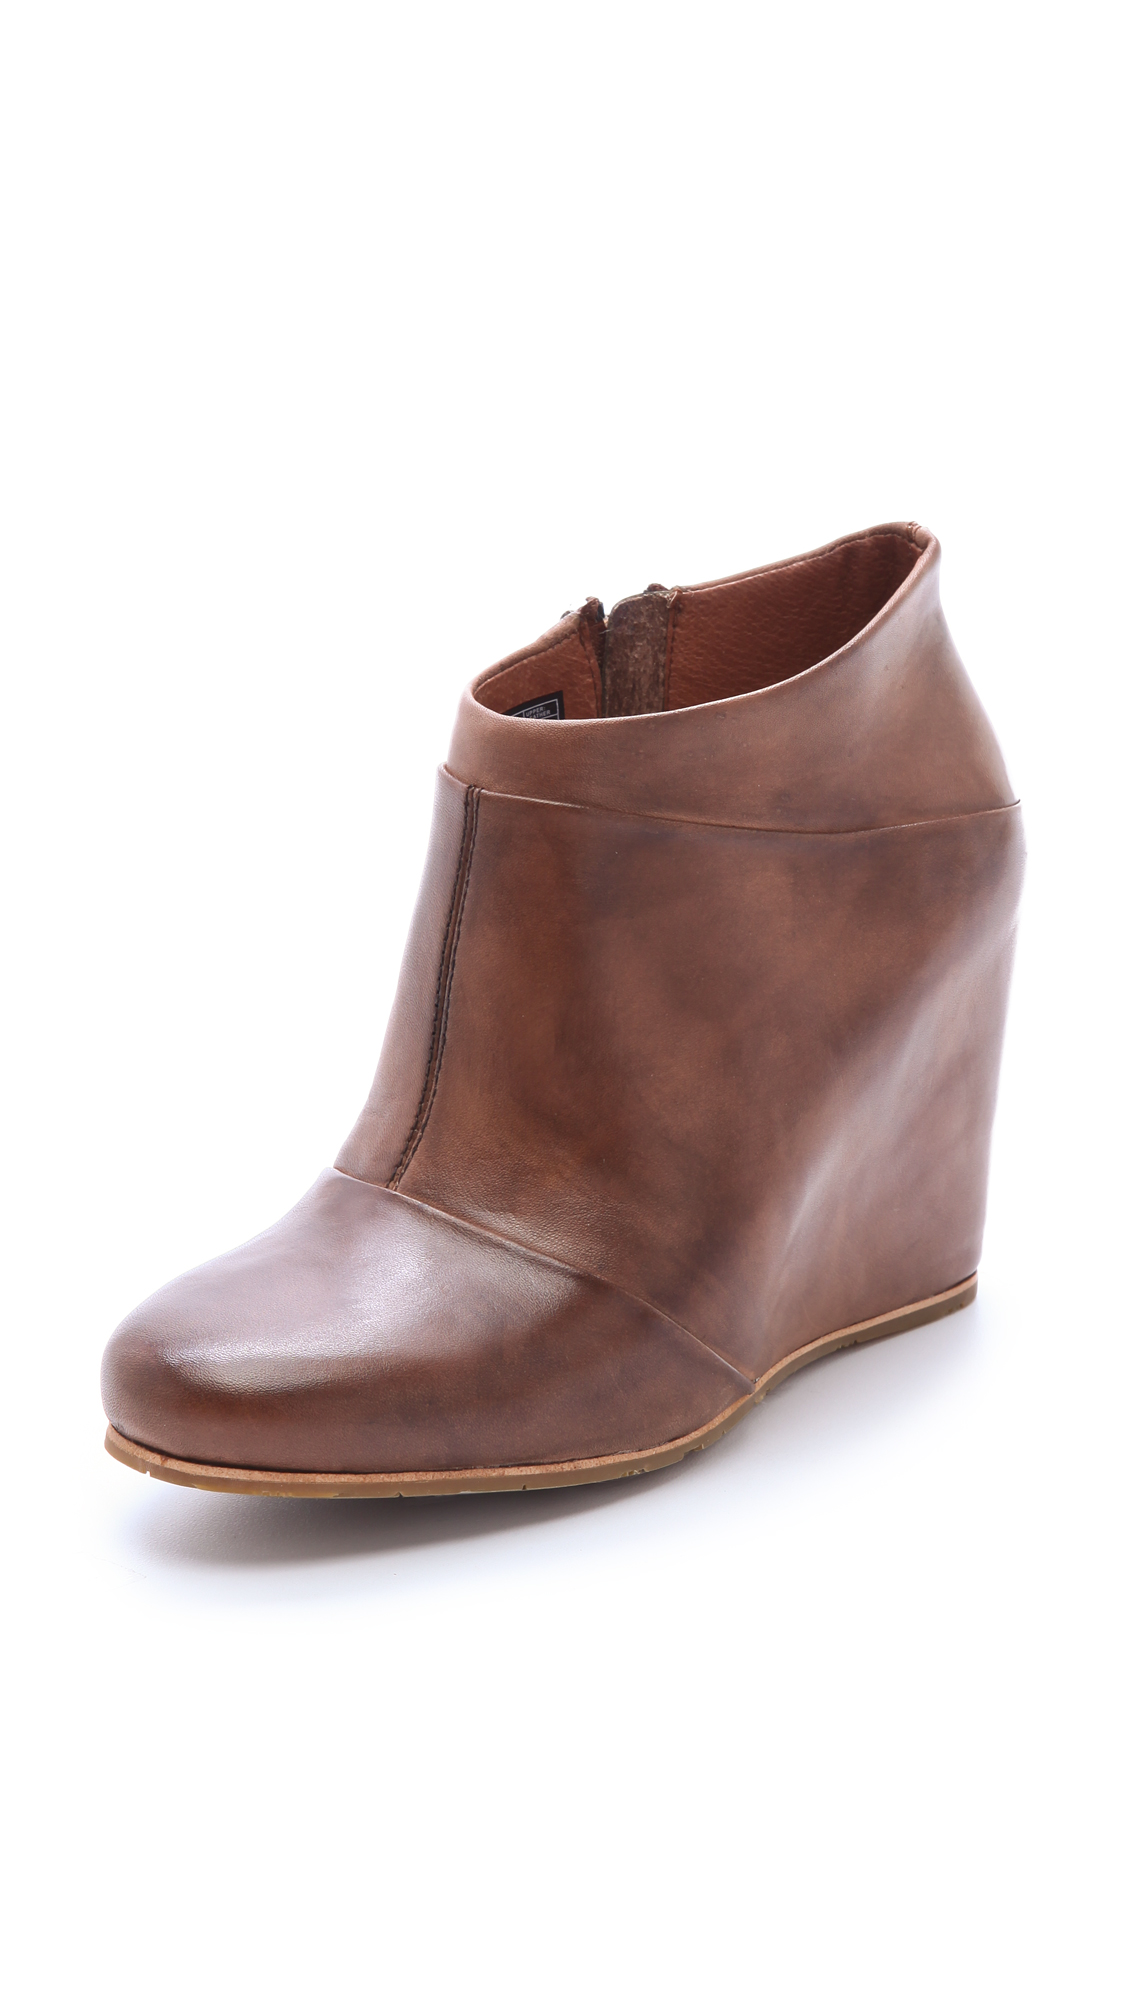 A women's pair of UGG Australia Lou black leather and suede boots in size 8. These boots feature black leather to the toes and heel counters and suede shafts with .